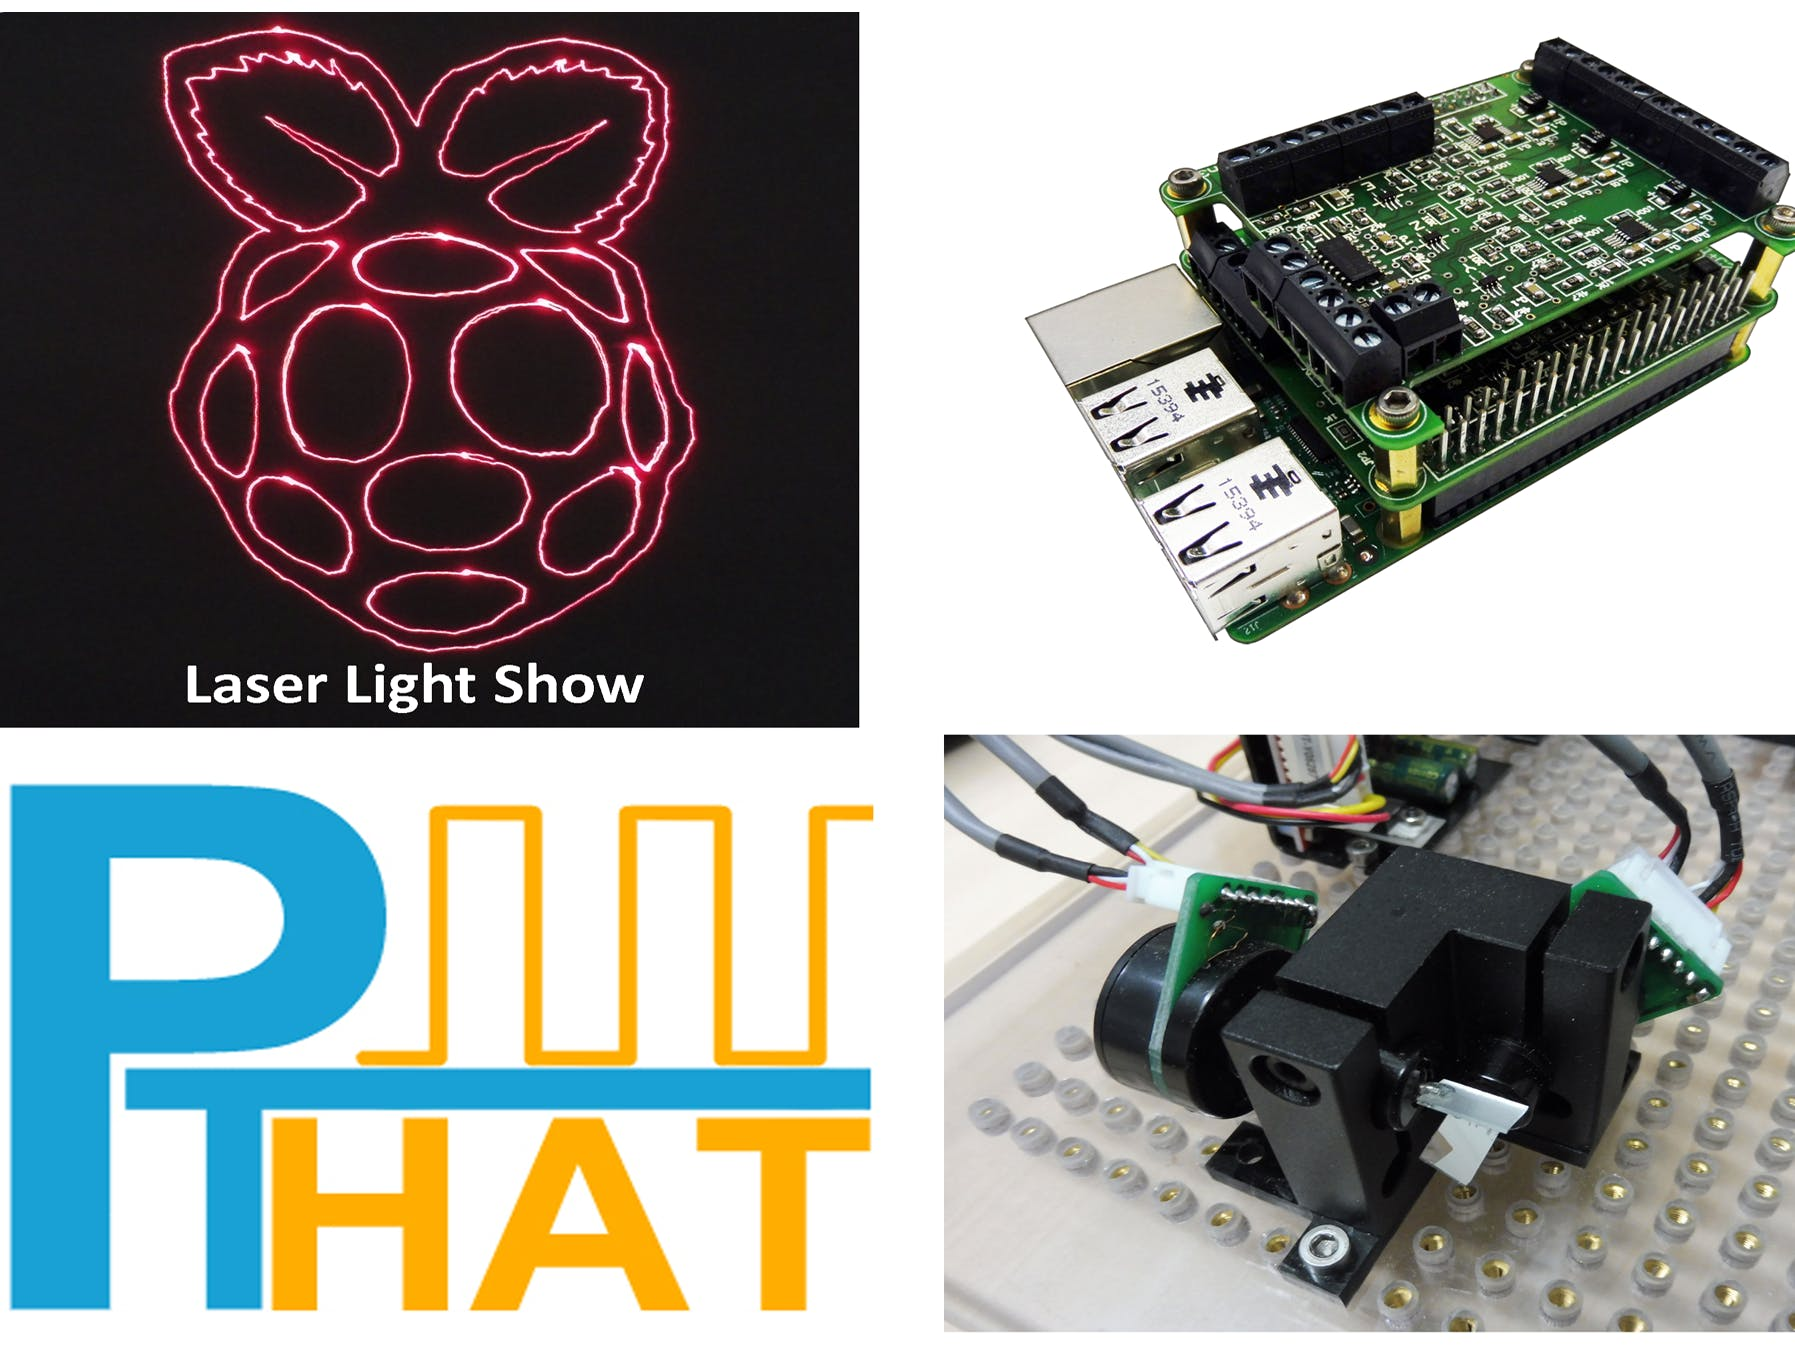 Pulse Train HAT Controlling Laser Light Show Raspberry Pi